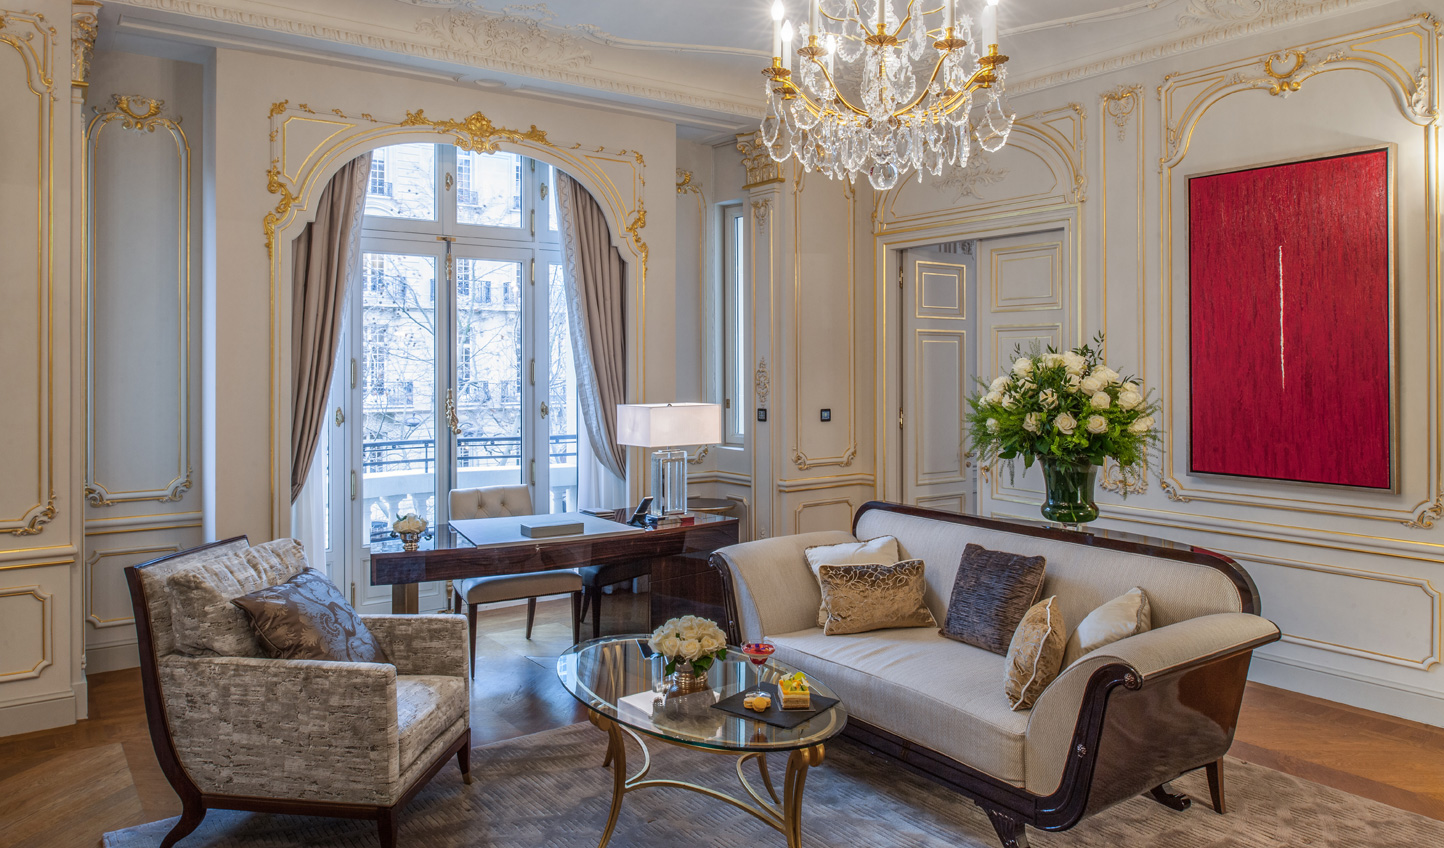 Stay in the Historic Suite for added opulence